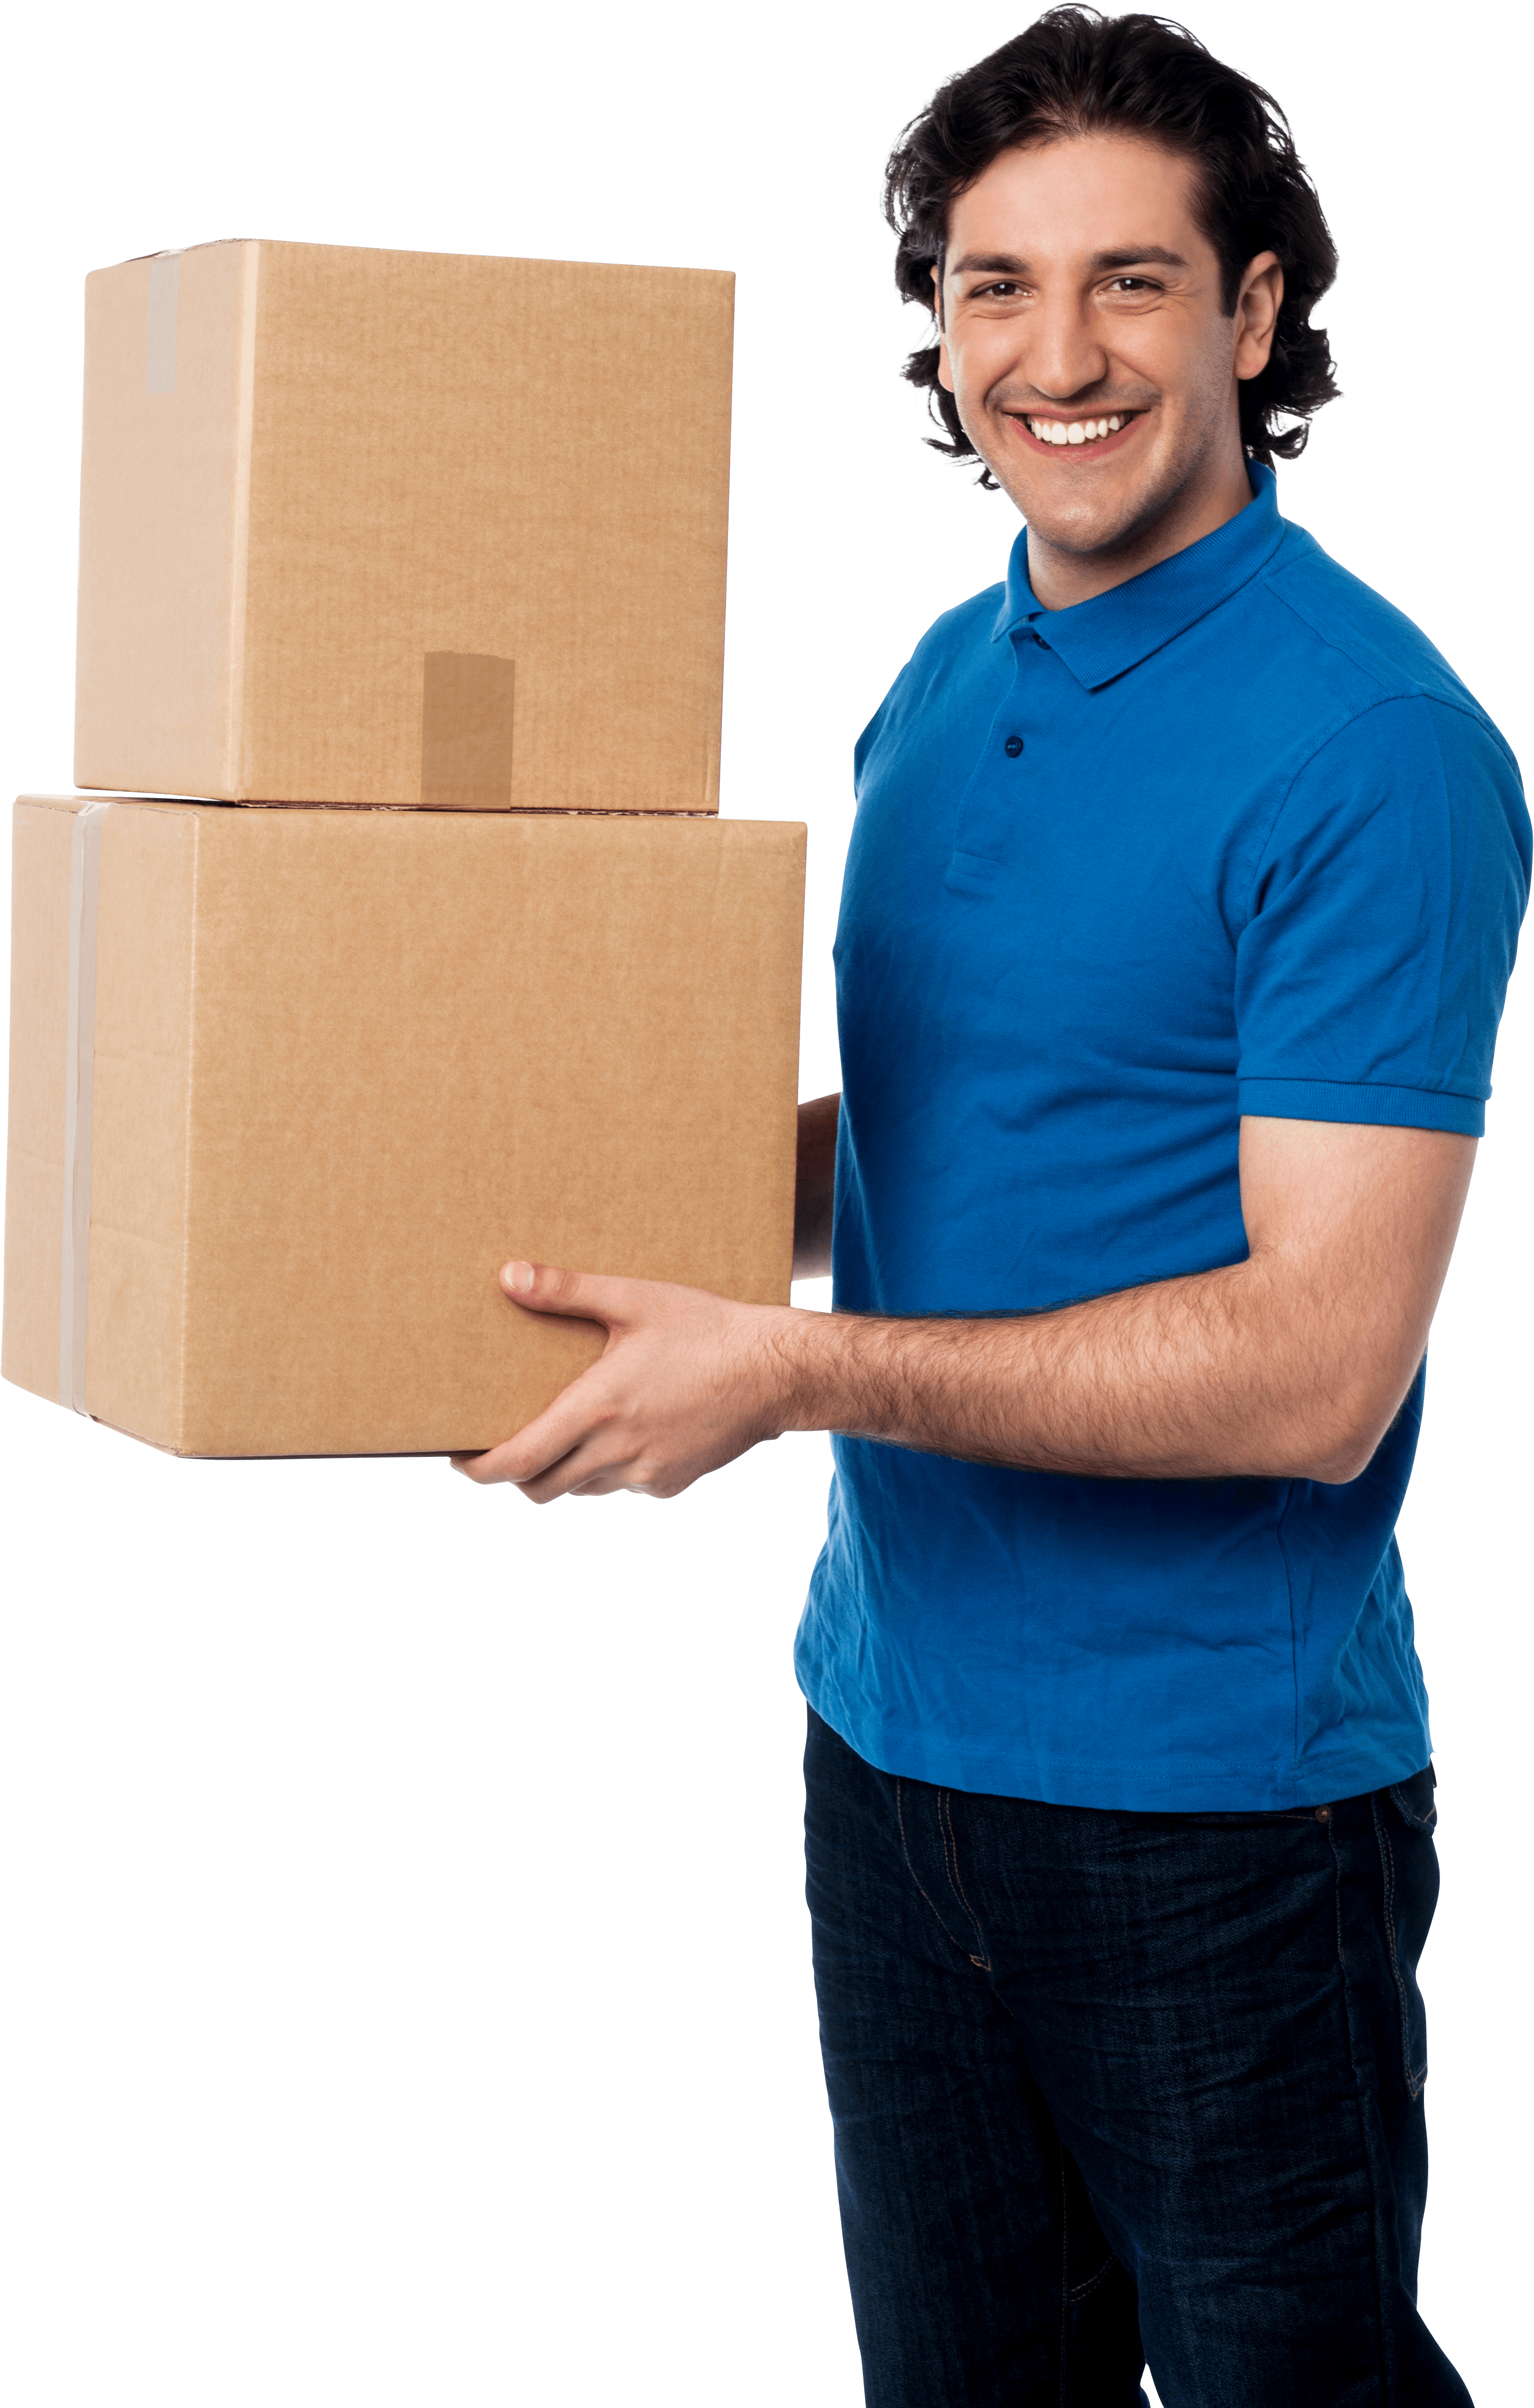 Man with boxes in blue shirt